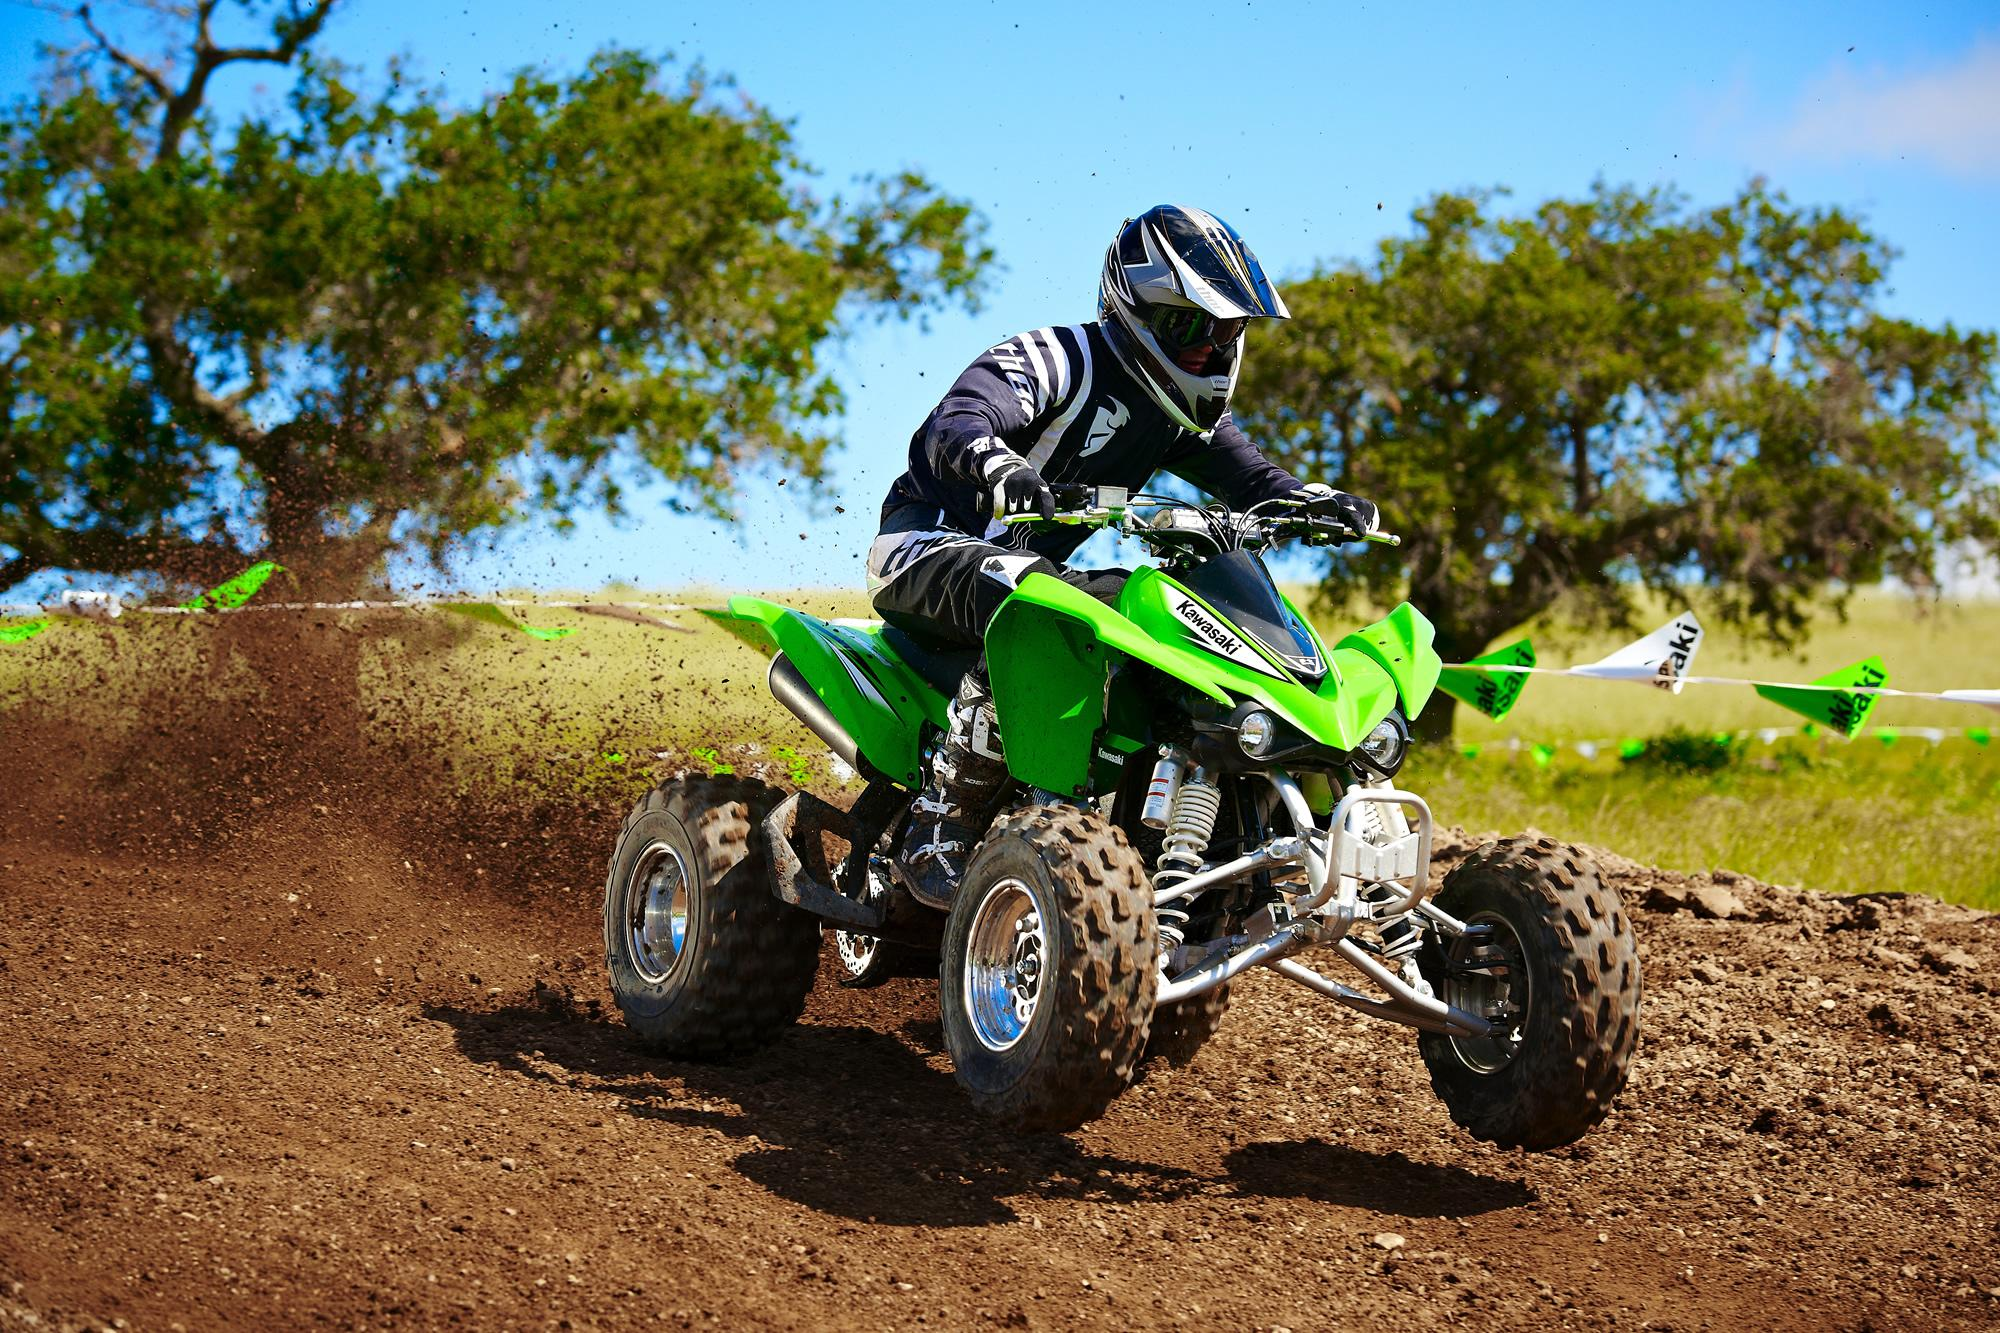 Gear Wallpaper Hd 2012 Kawasaki Kfx 450r Review Top Speed